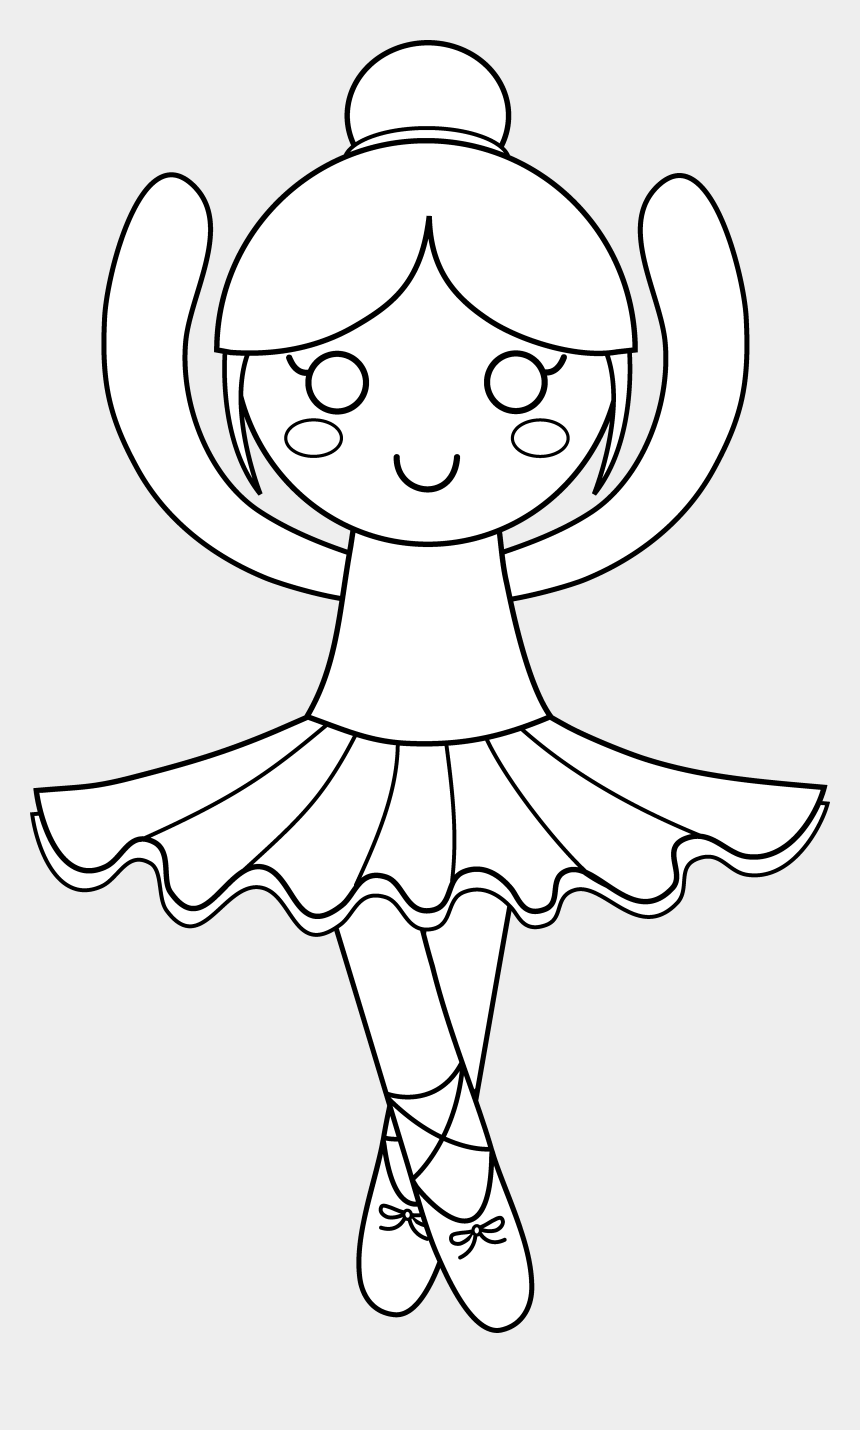 ballerina coloring pictures girl dancing coloring pages at getcoloringscom free ballerina pictures coloring